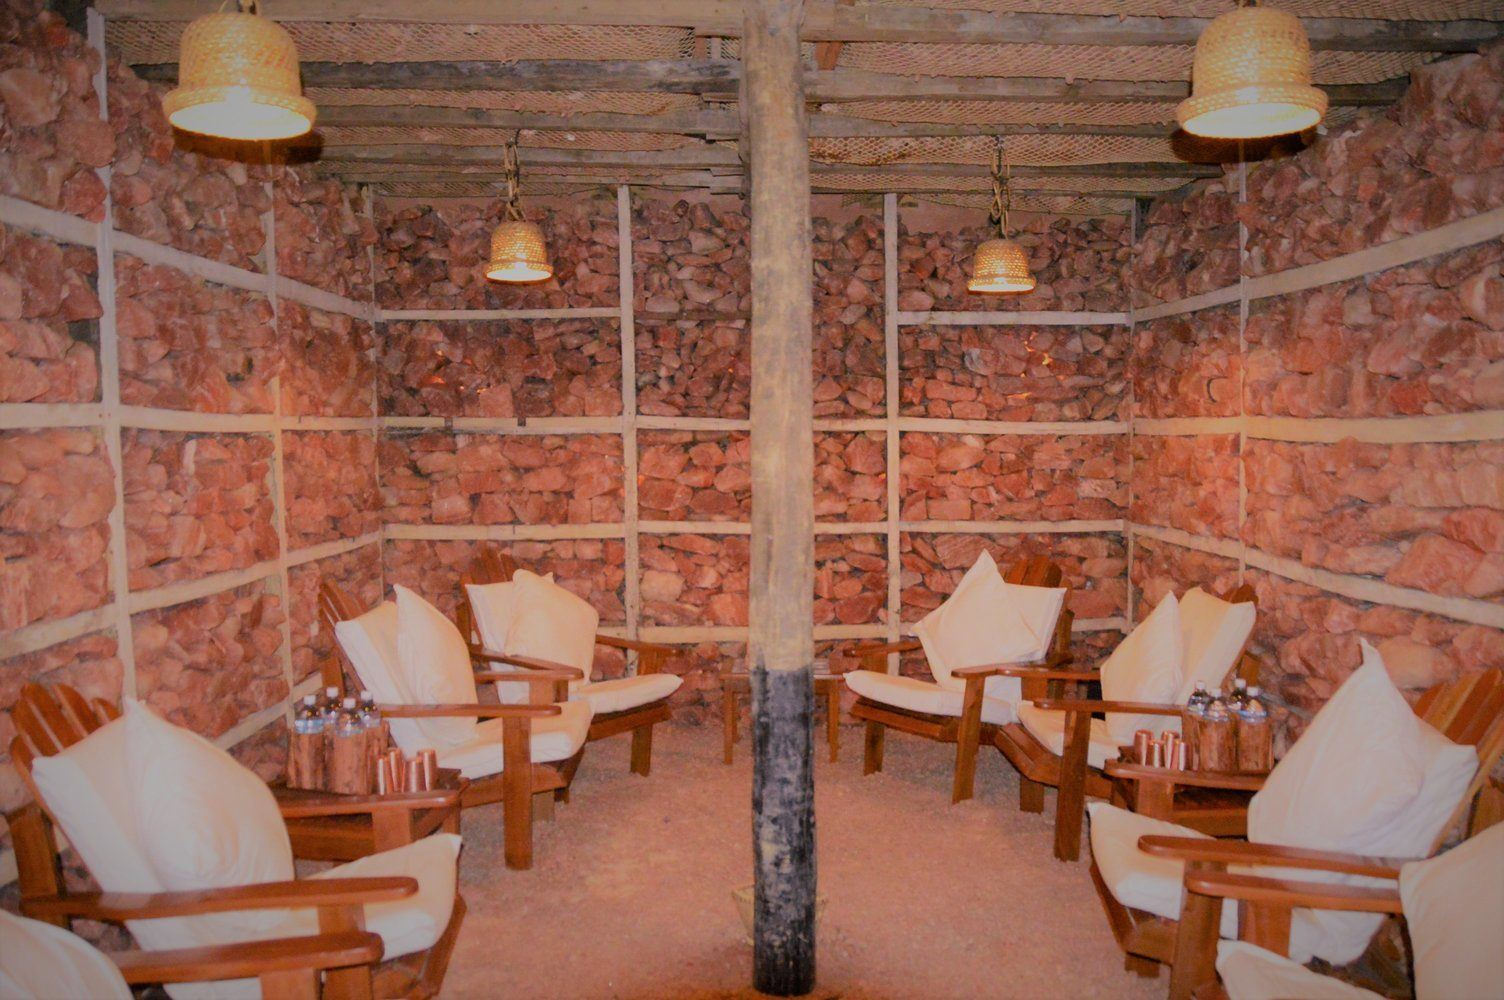 pink himalayan salt room with chairs at dwarika's resort dhulikhel